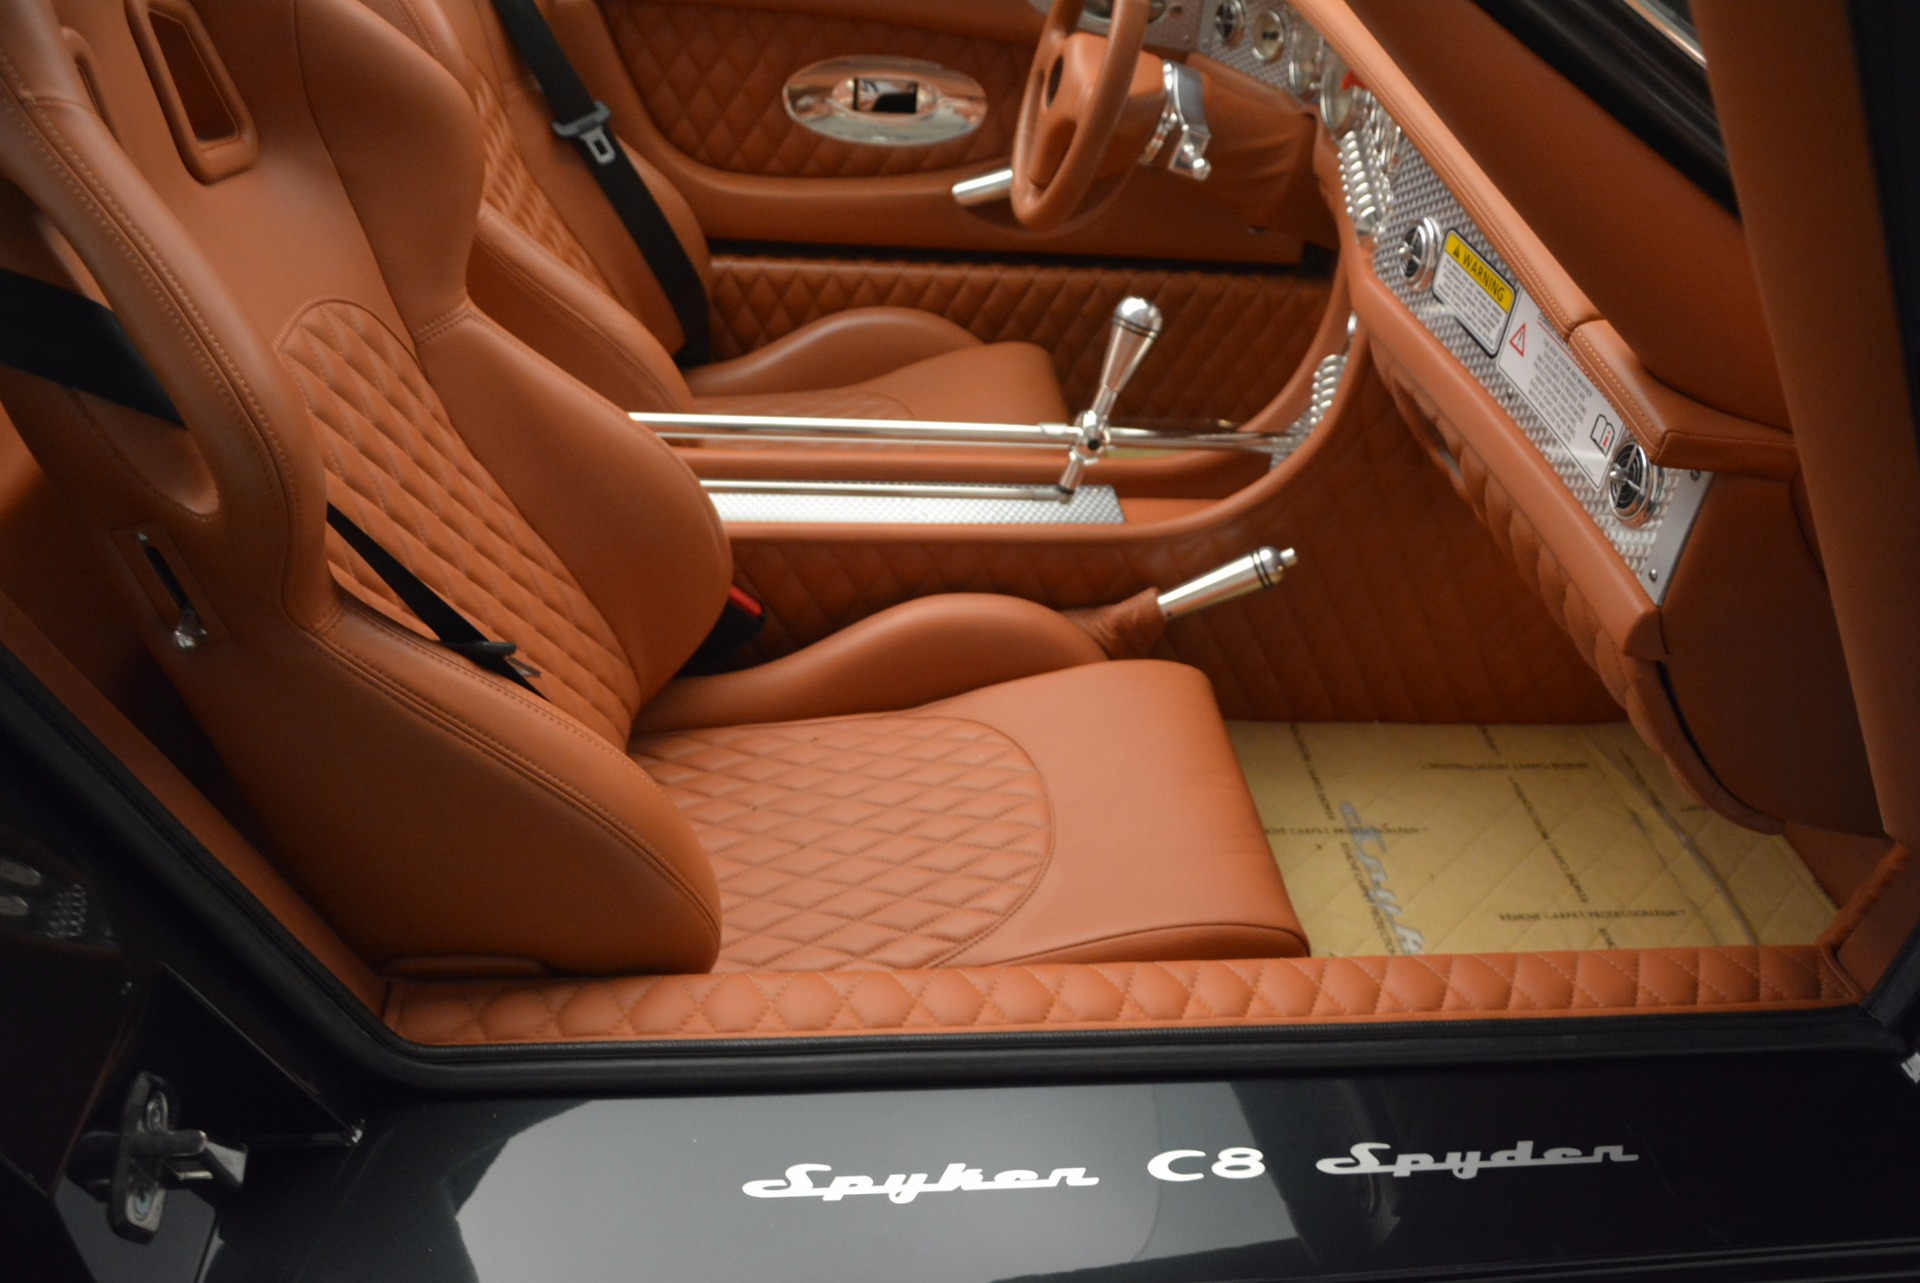 Used 2006 Spyker C8 Spyder  For Sale In Greenwich, CT 1007_p20